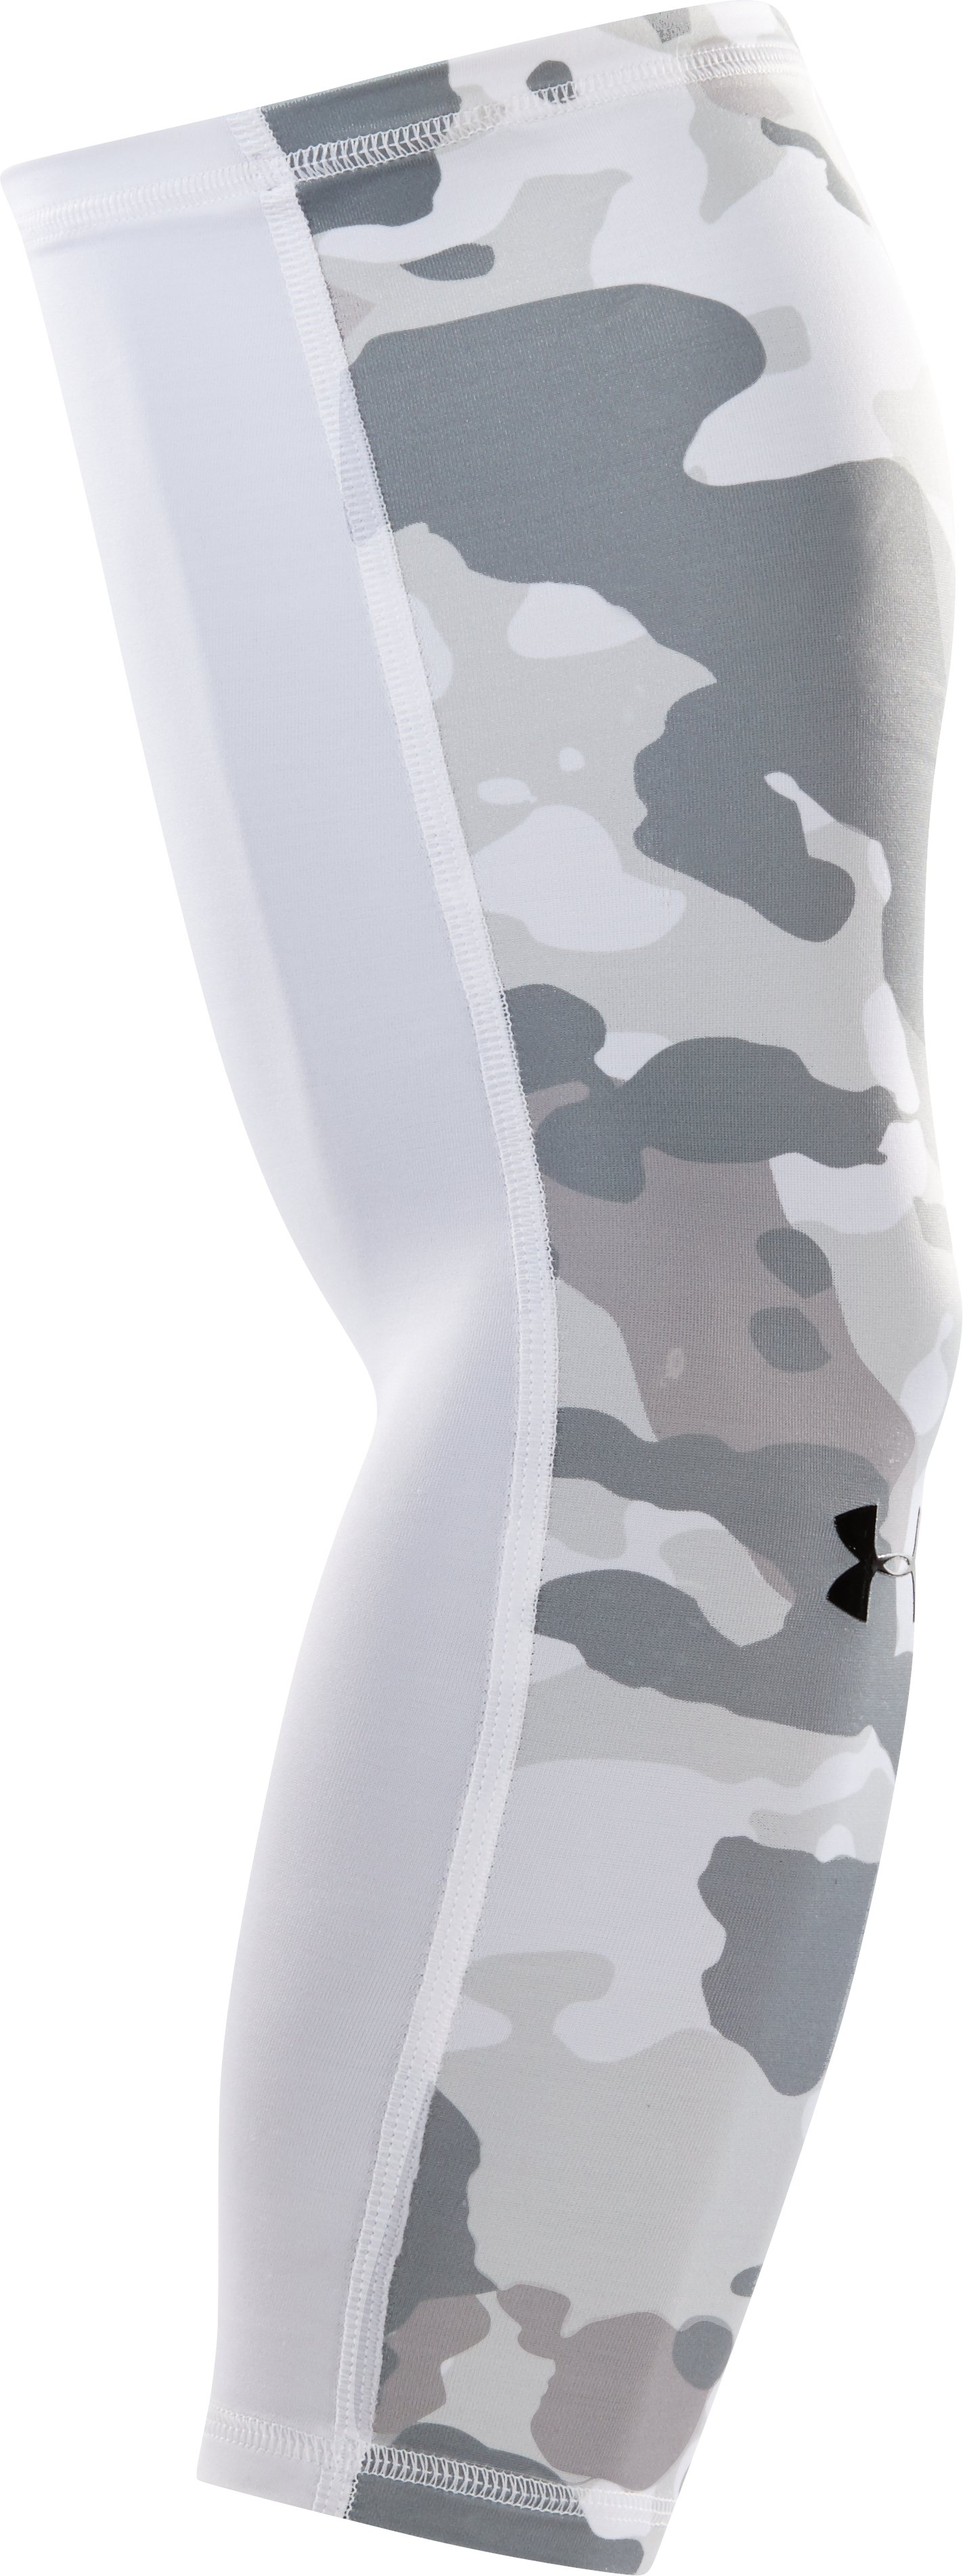 UA Renegade Shooter Sleeve, White